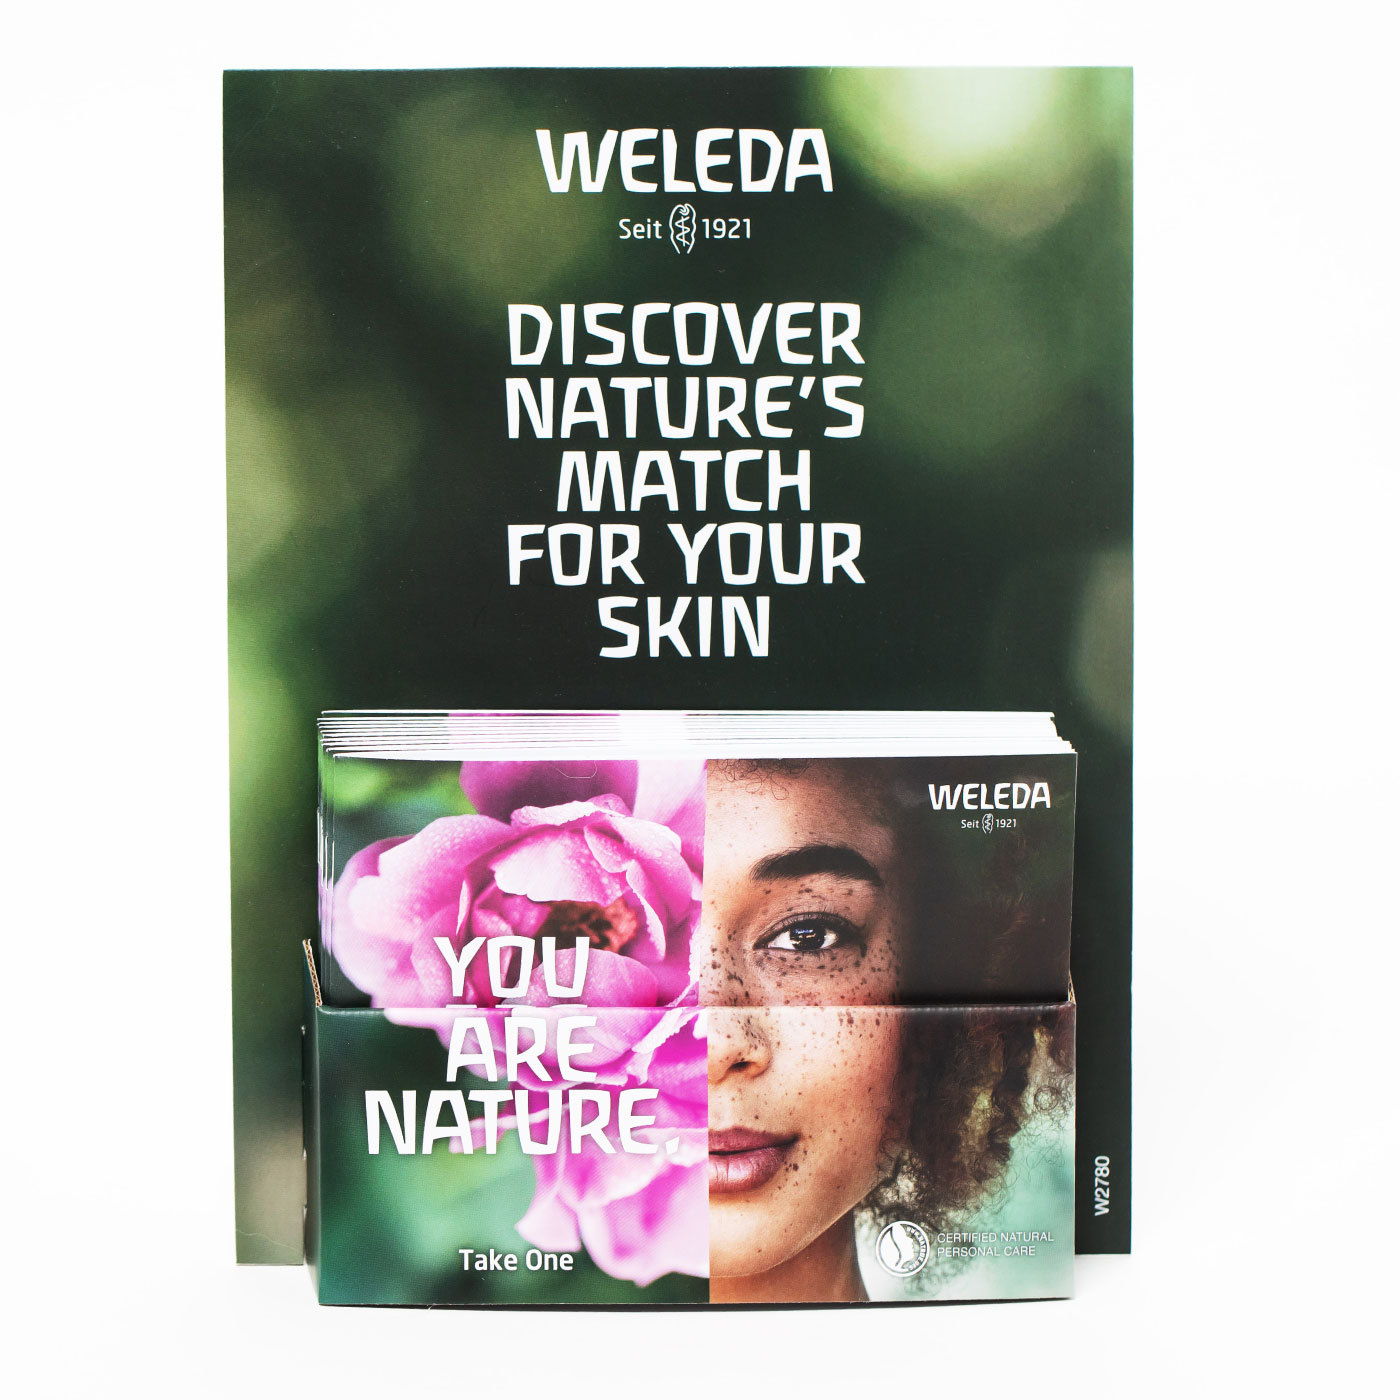 Weleda Brochure Holder